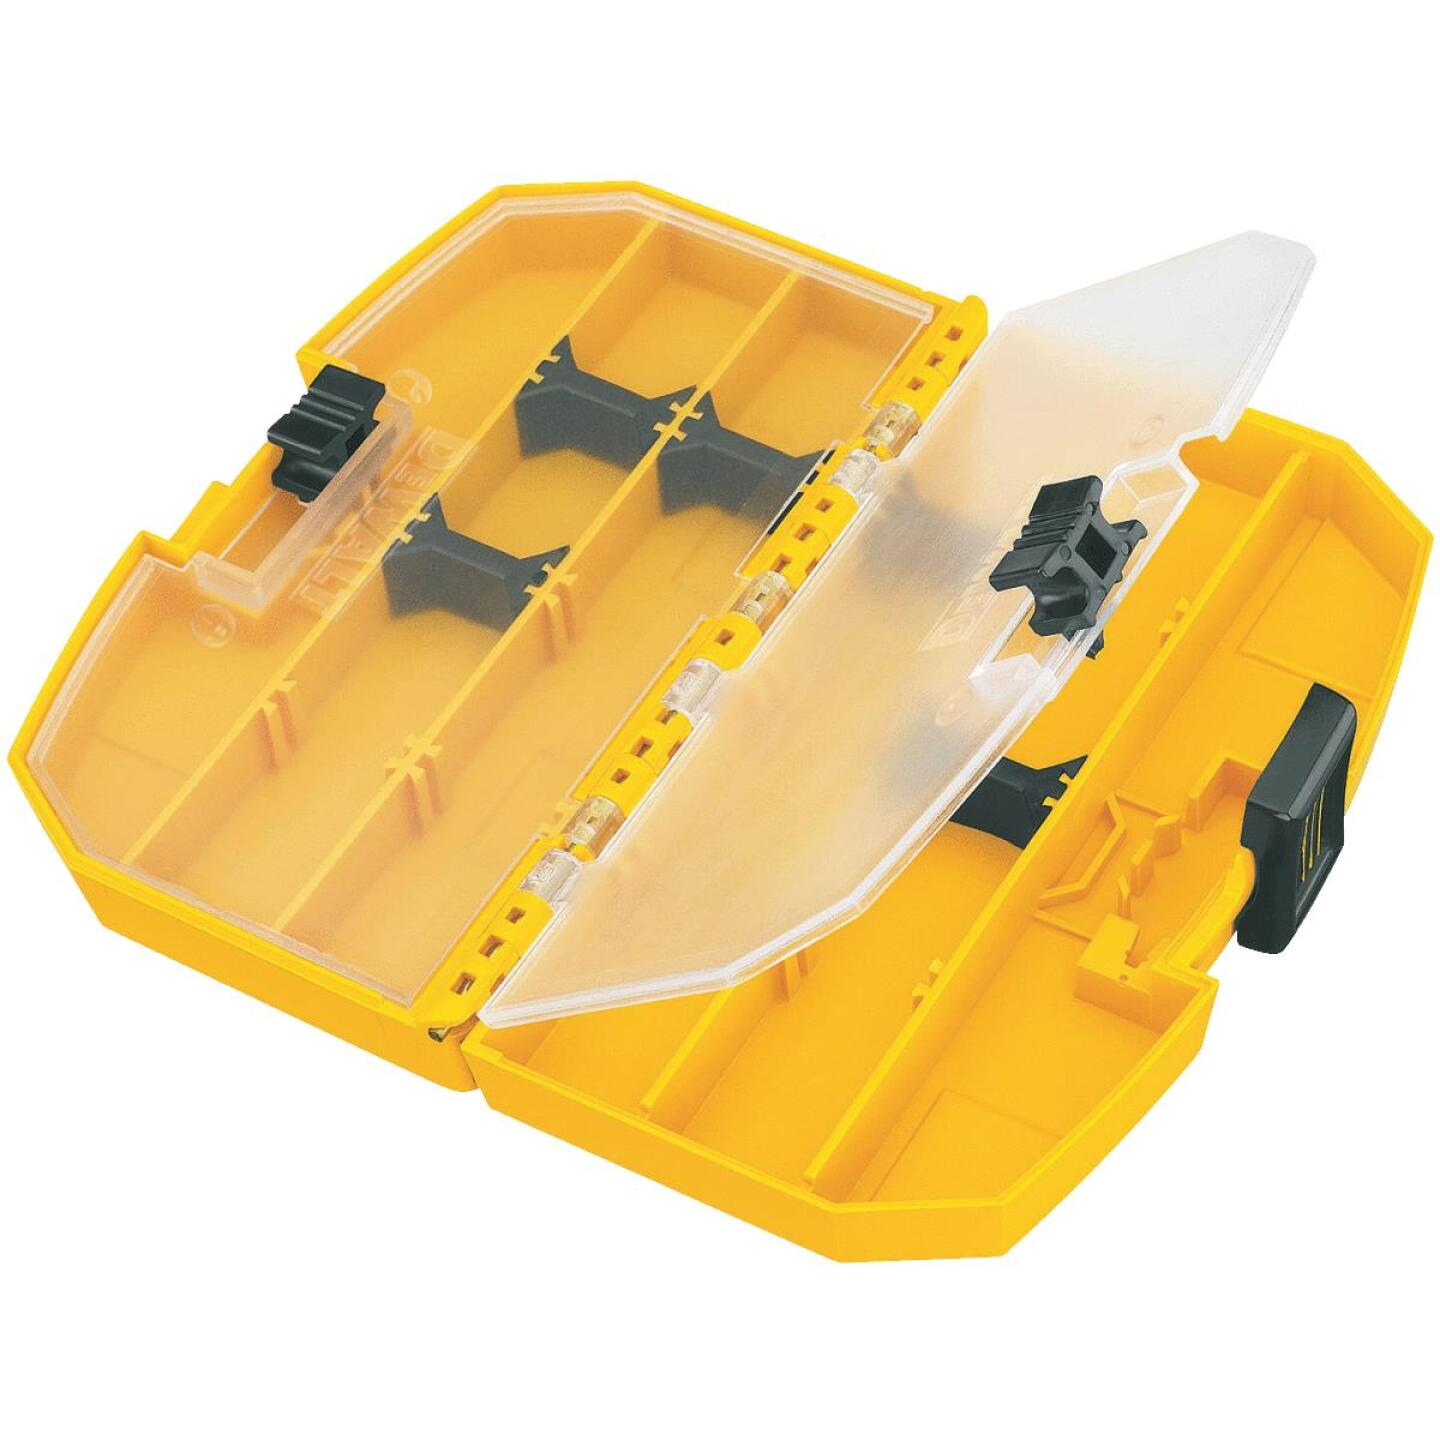 DeWalt Medium Size Tough Case+ Plastic Bit Case Image 1